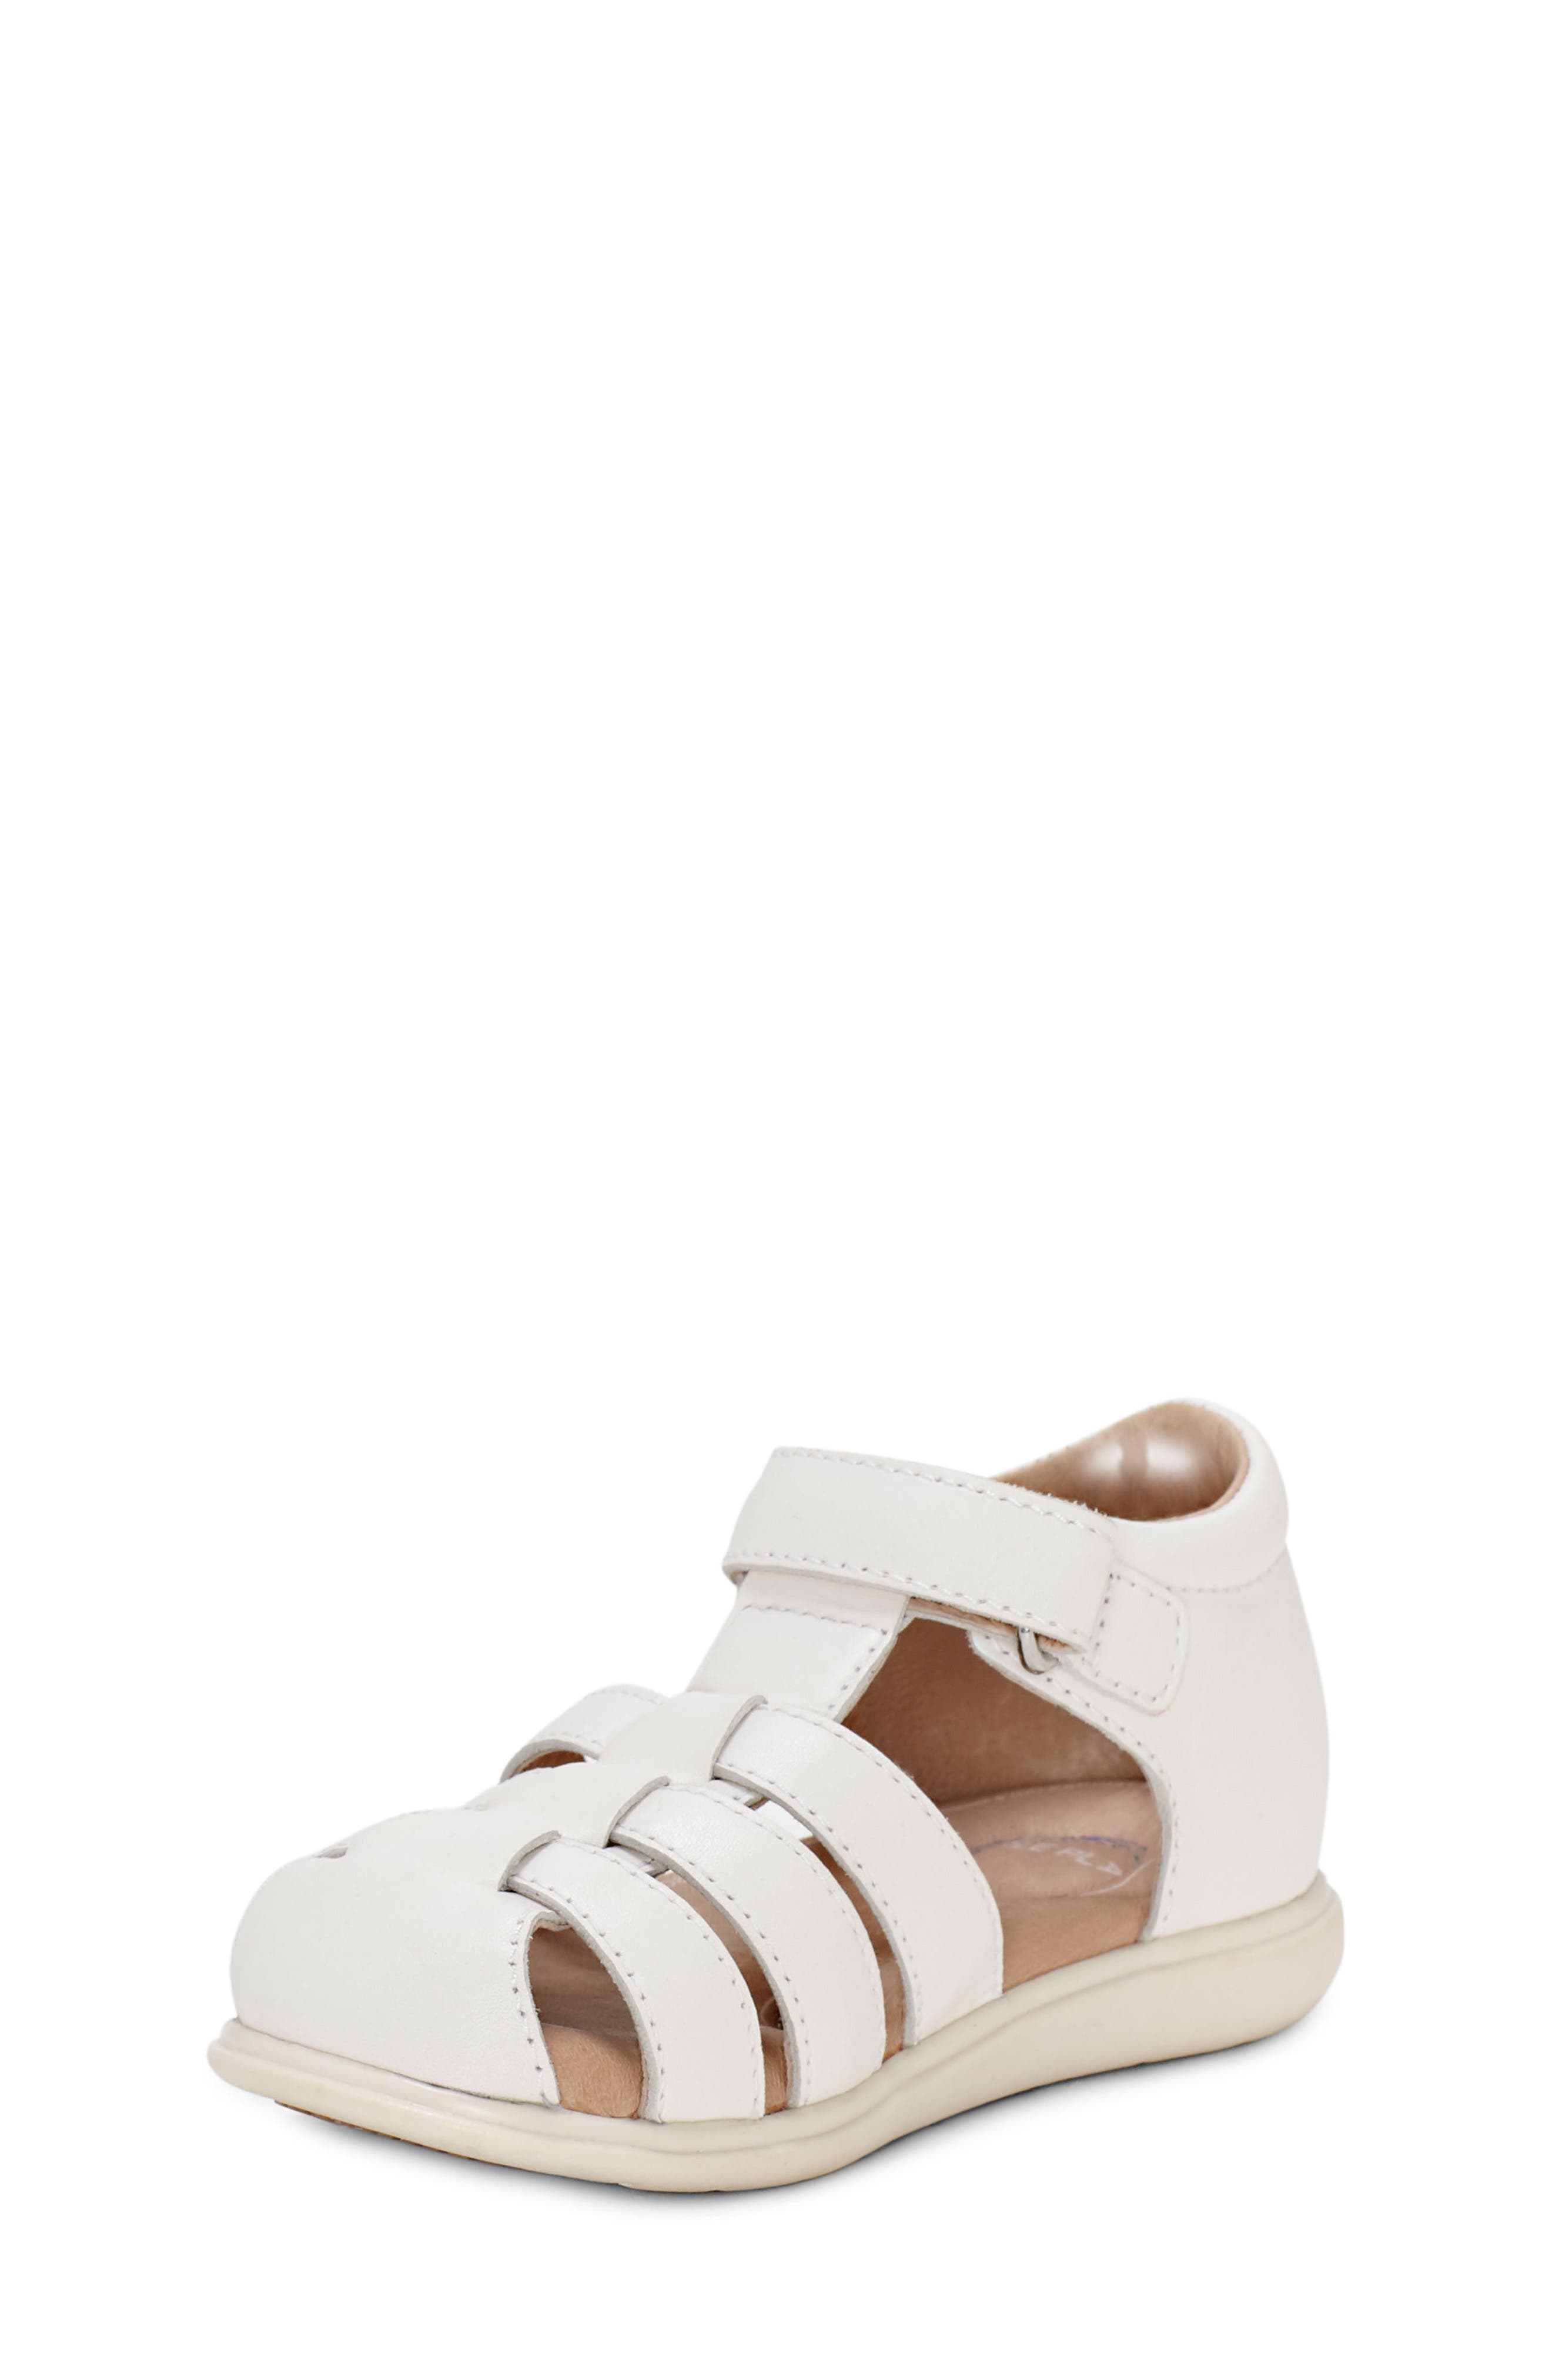 SOLE PLAY,                             Caleb Sandal,                             Alternate thumbnail 4, color,                             WHITE